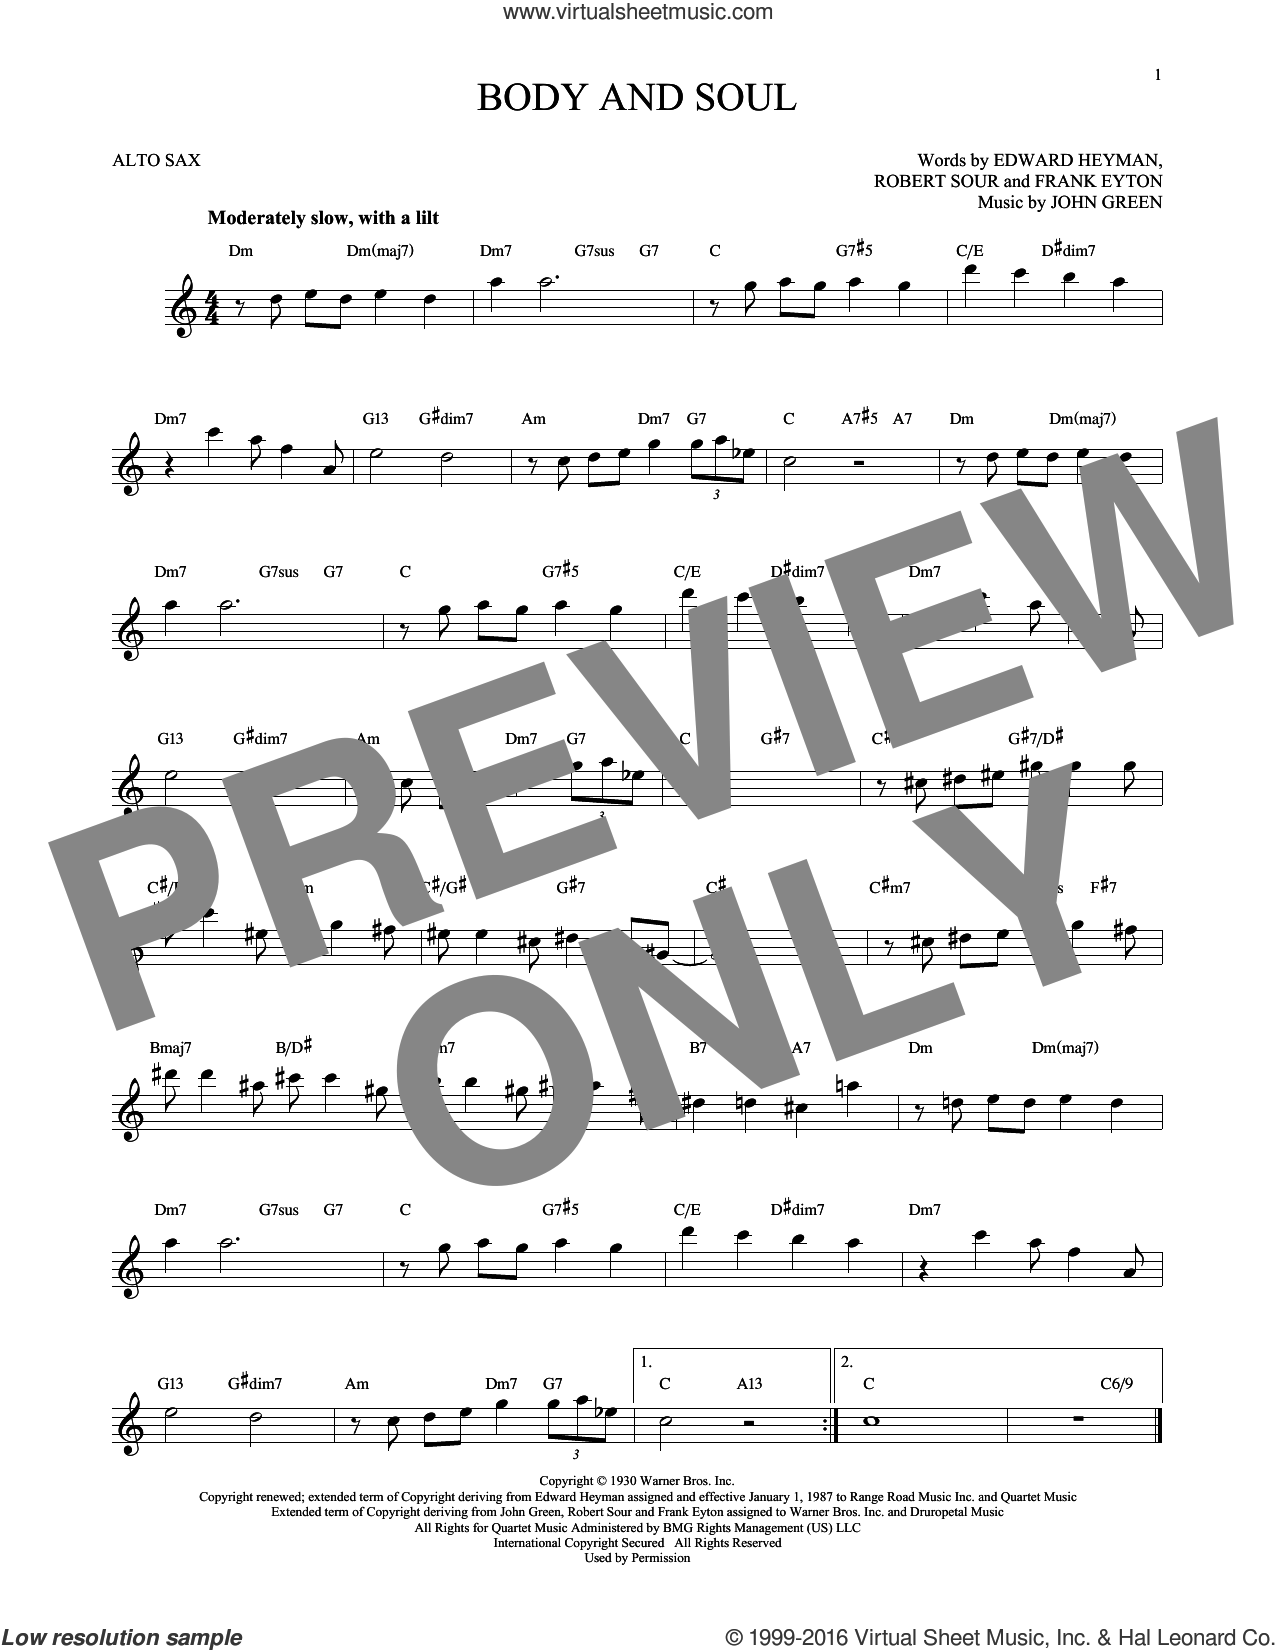 Body And Soul sheet music for alto saxophone solo by Robert Sour, Tony Bennett & Amy Winehouse, Edward Heyman, Frank Eyton and Johnny Green. Score Image Preview.